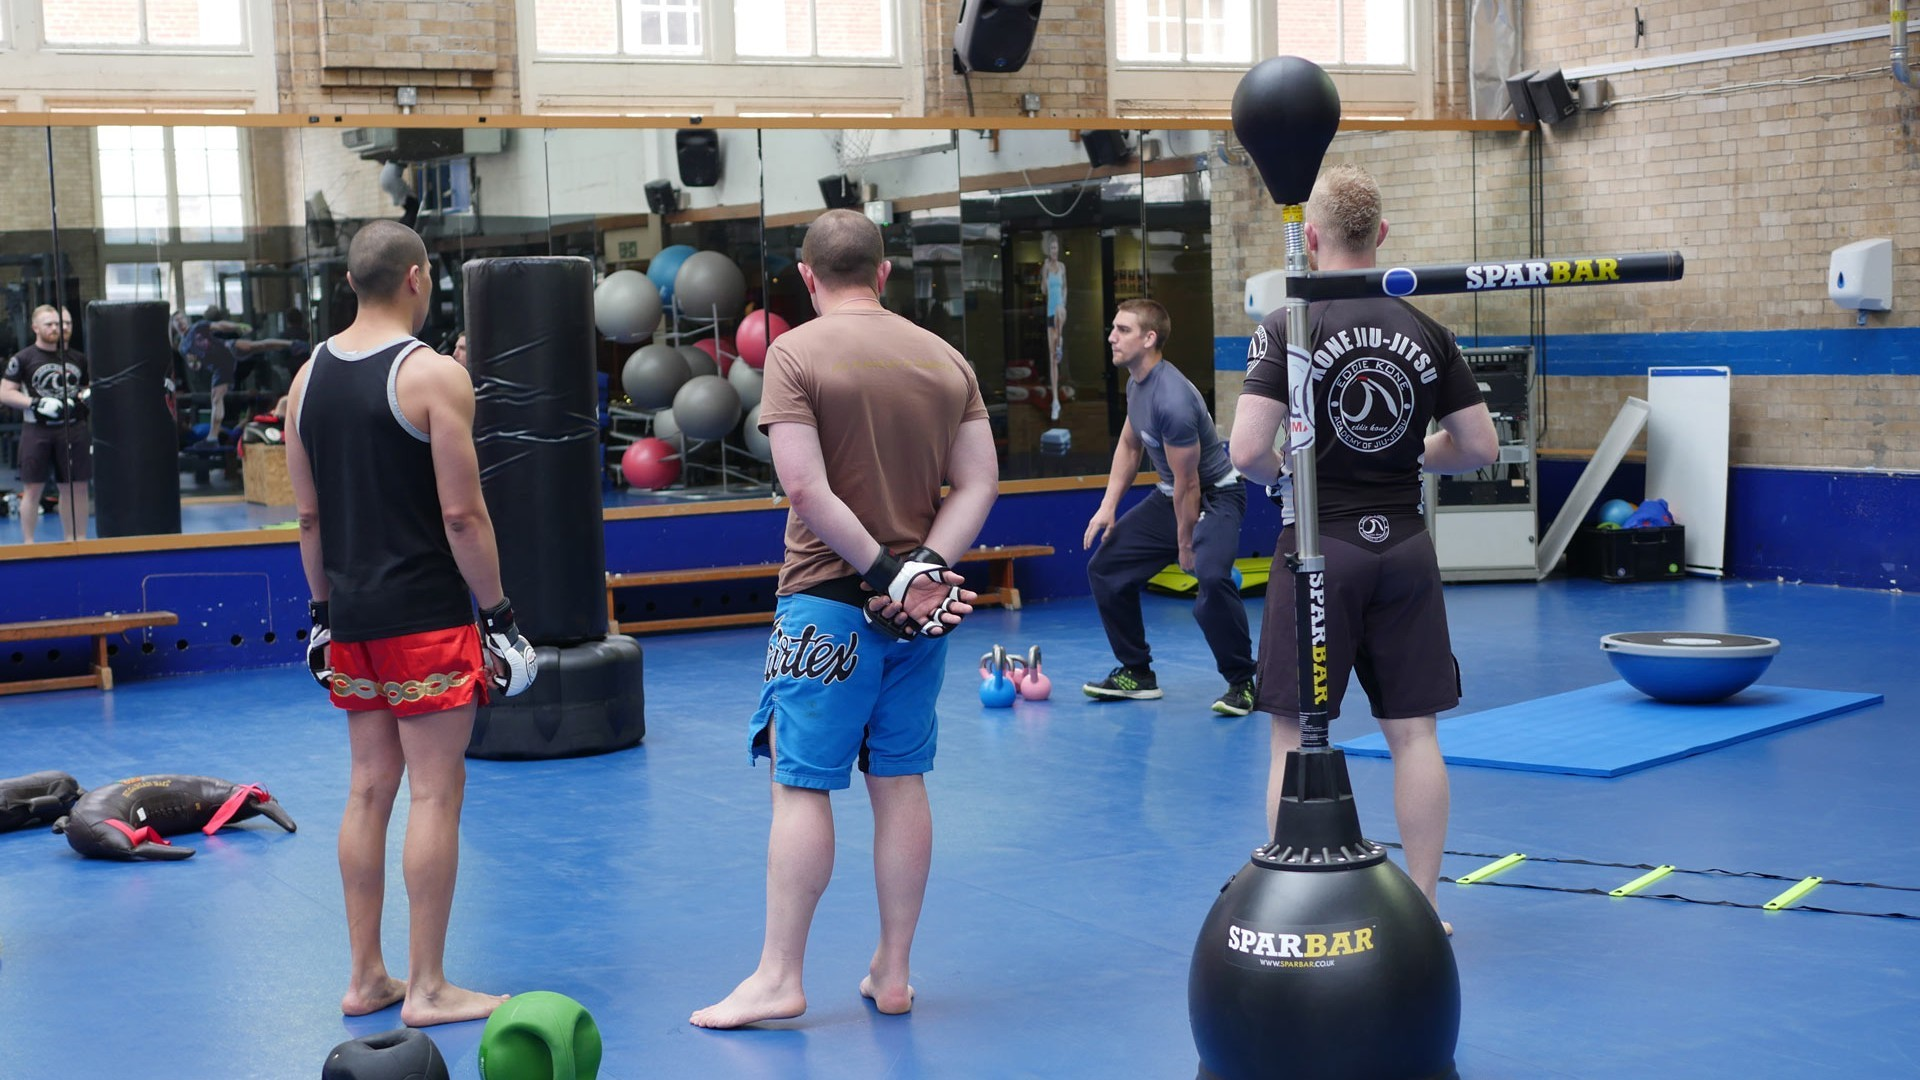 100% training MMA london interior shot with people